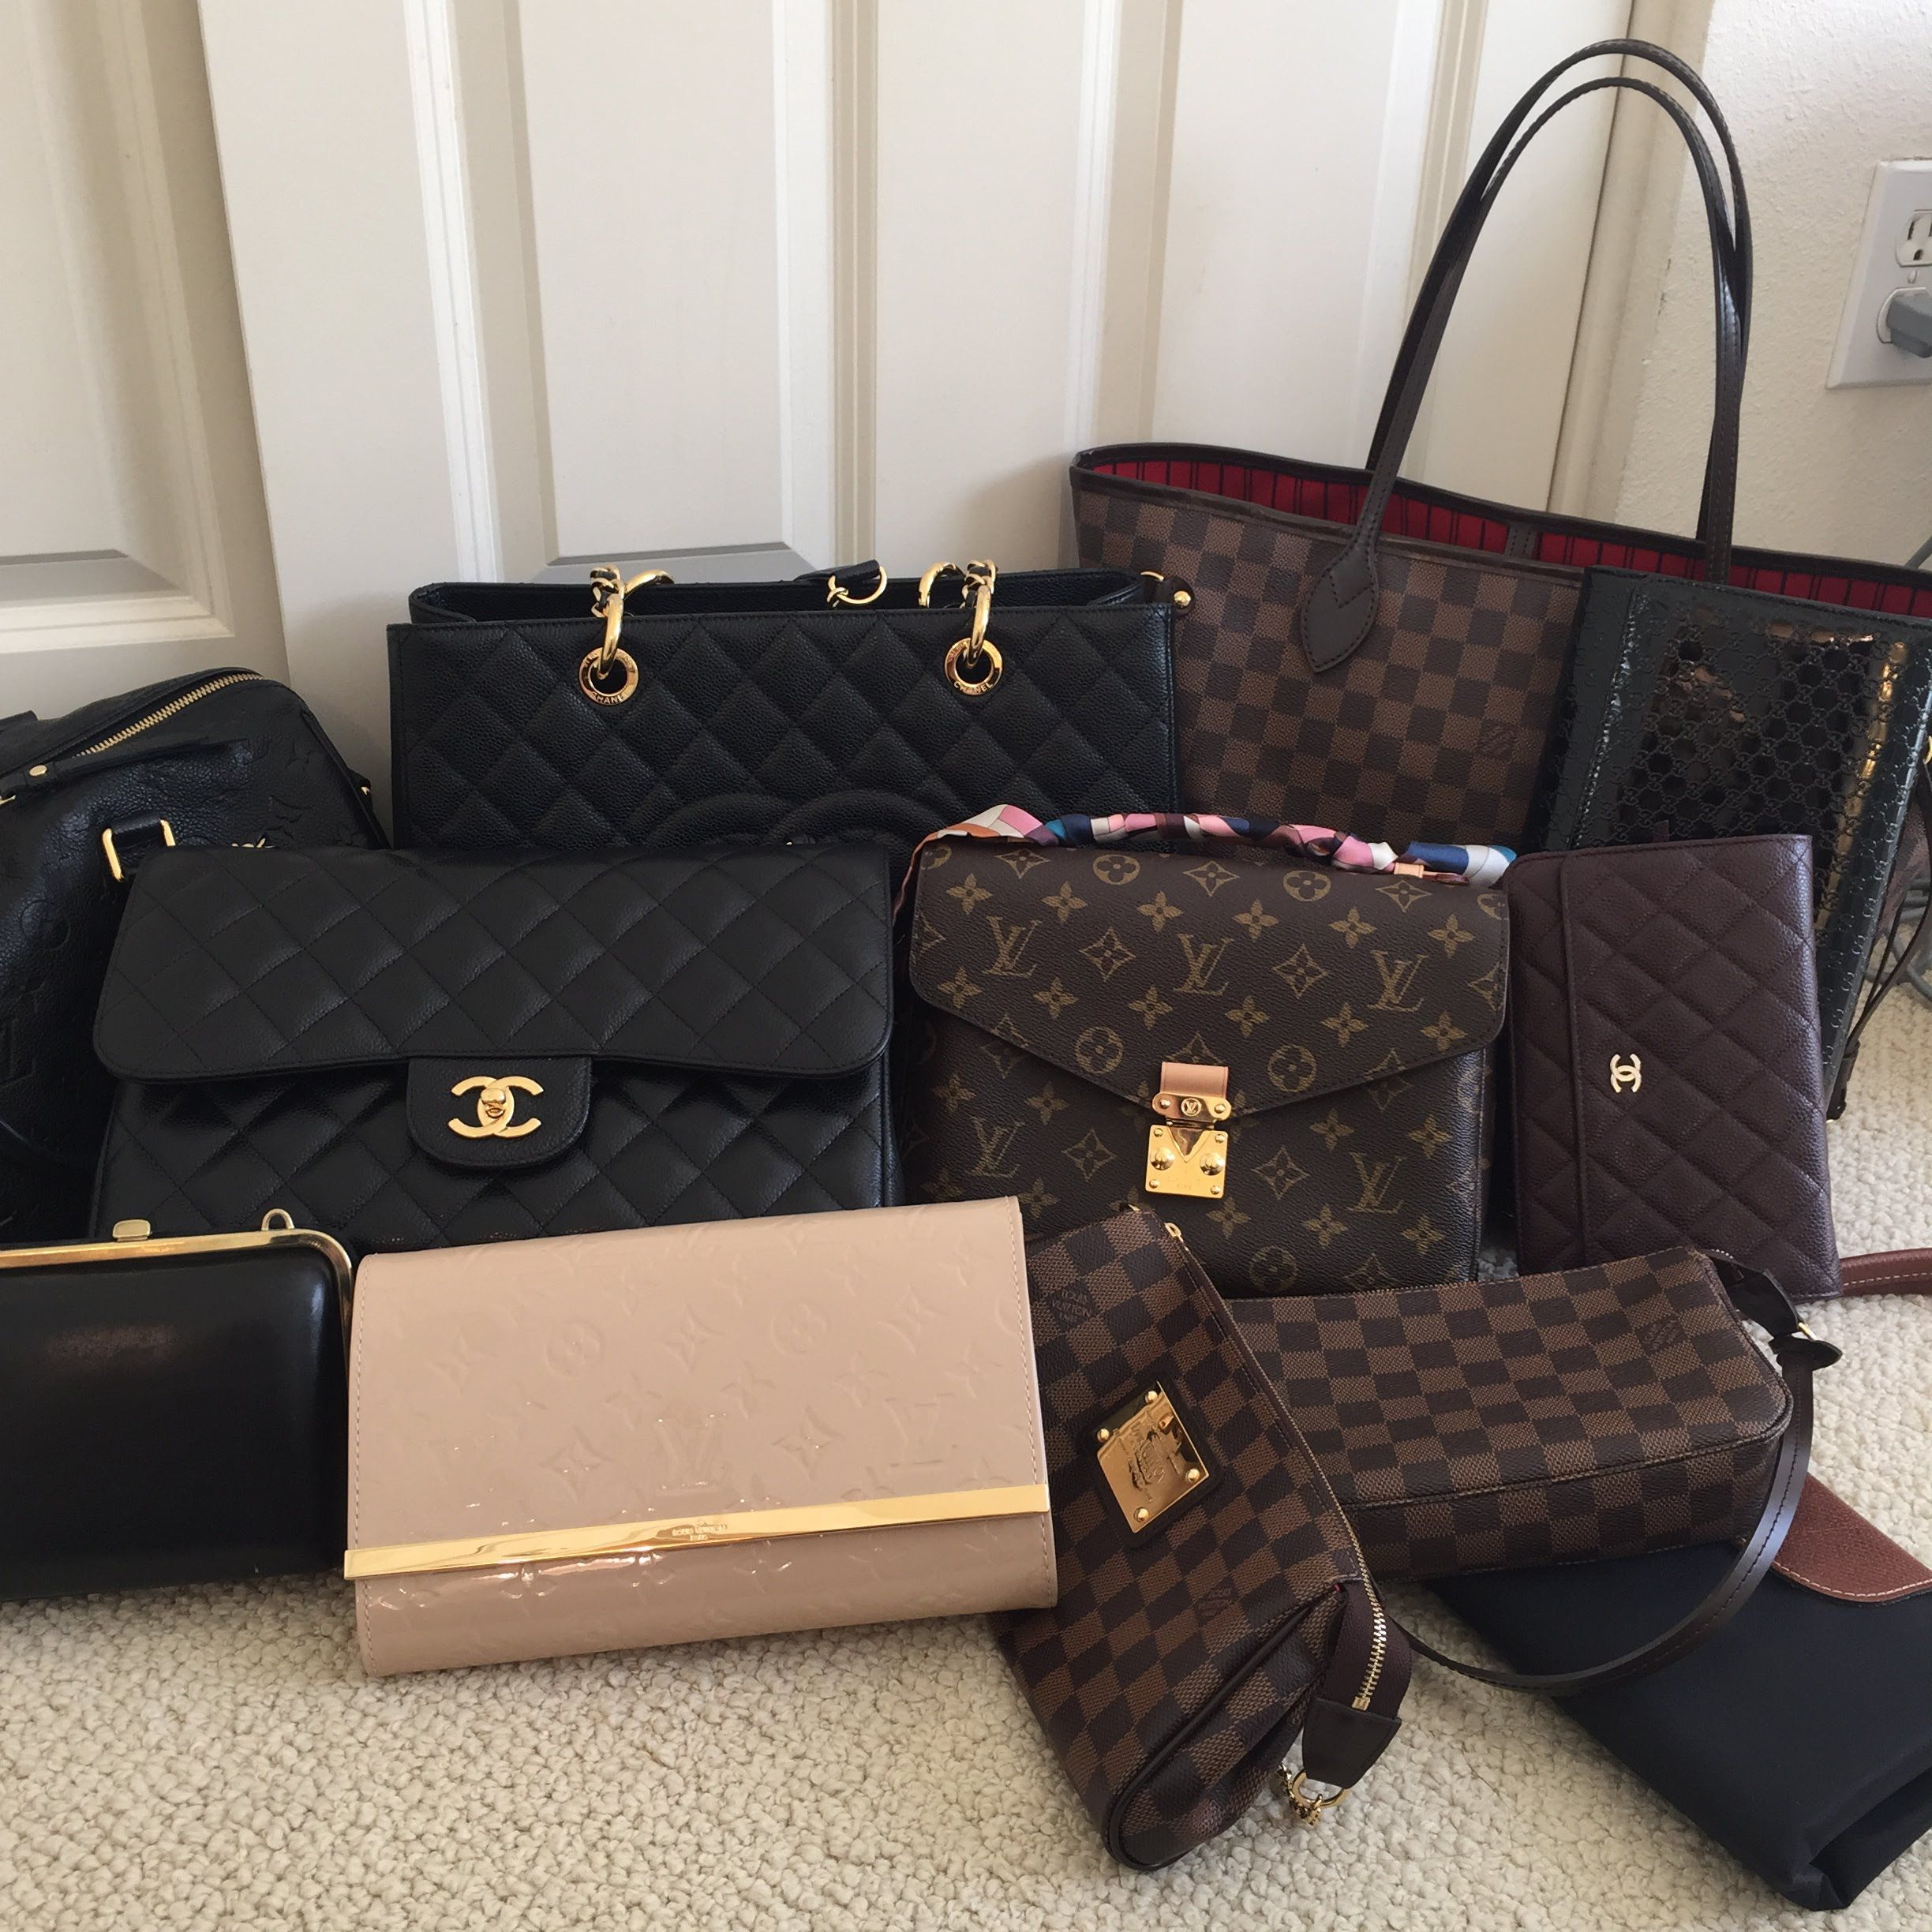 Thank You So Much For Watching My Handbag Collection Video Details On The Handbags Shown Are Below Please Let Me Know If Have Any Other Qu